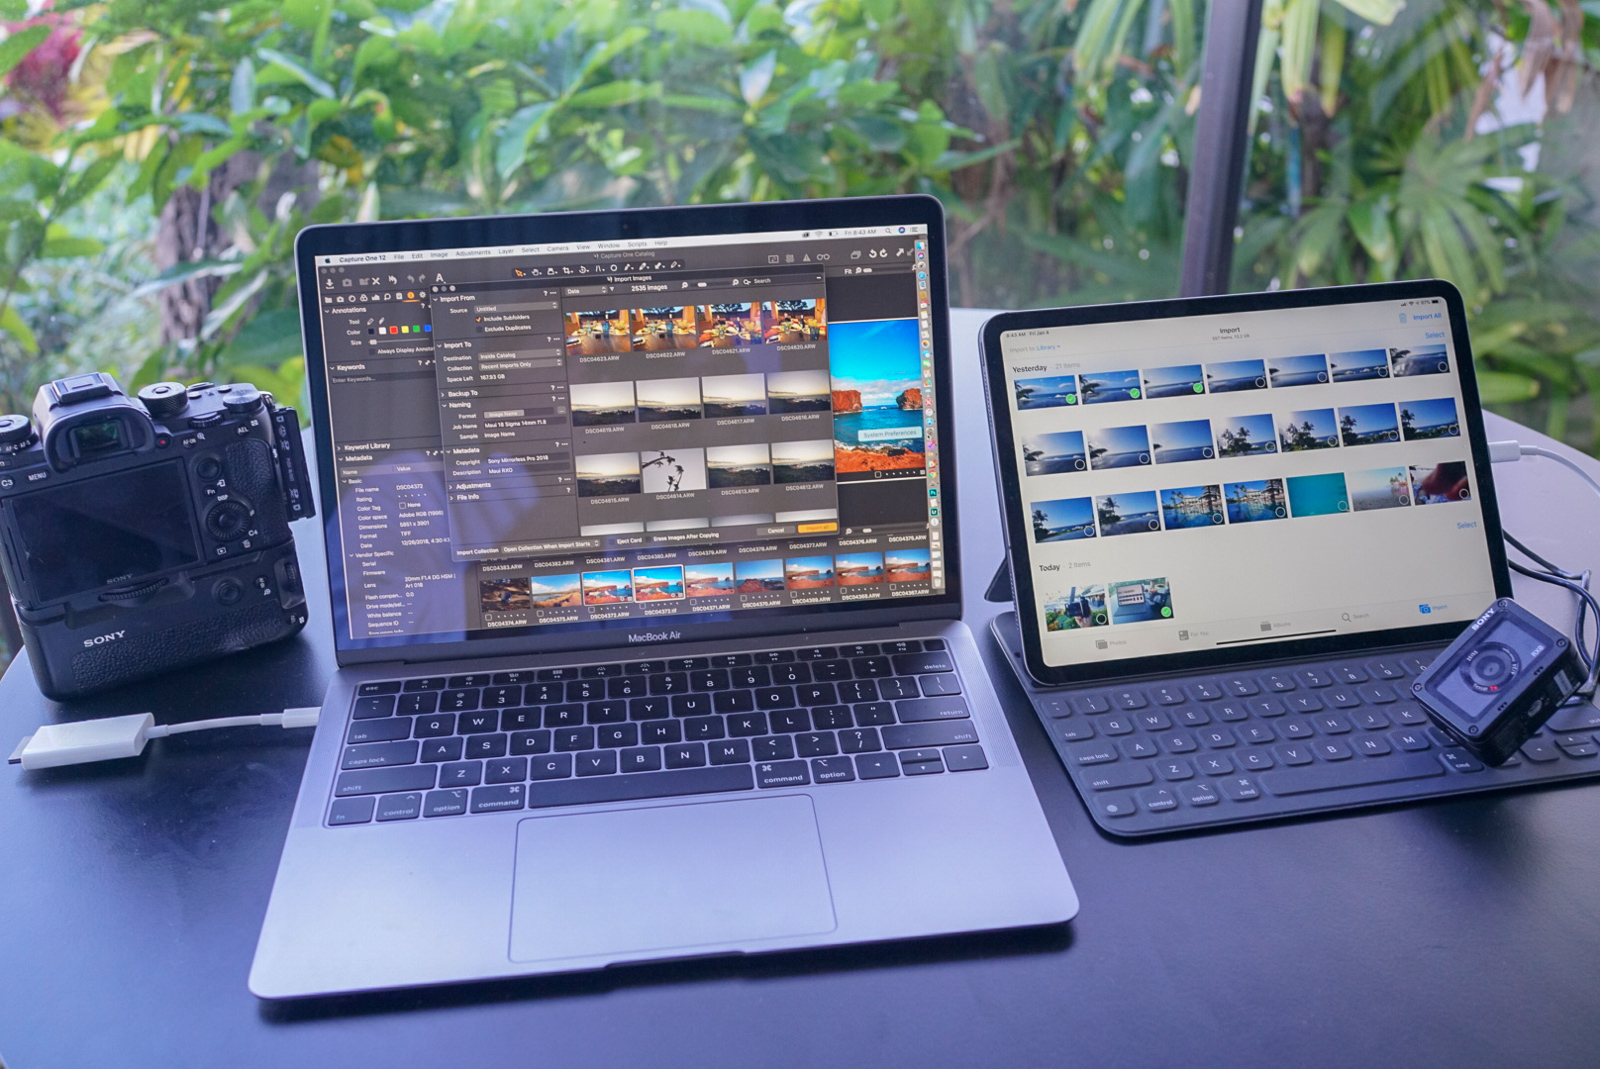 Lightweight travel with the MacBook Air and ultra lightweight with the iPad and RXO.